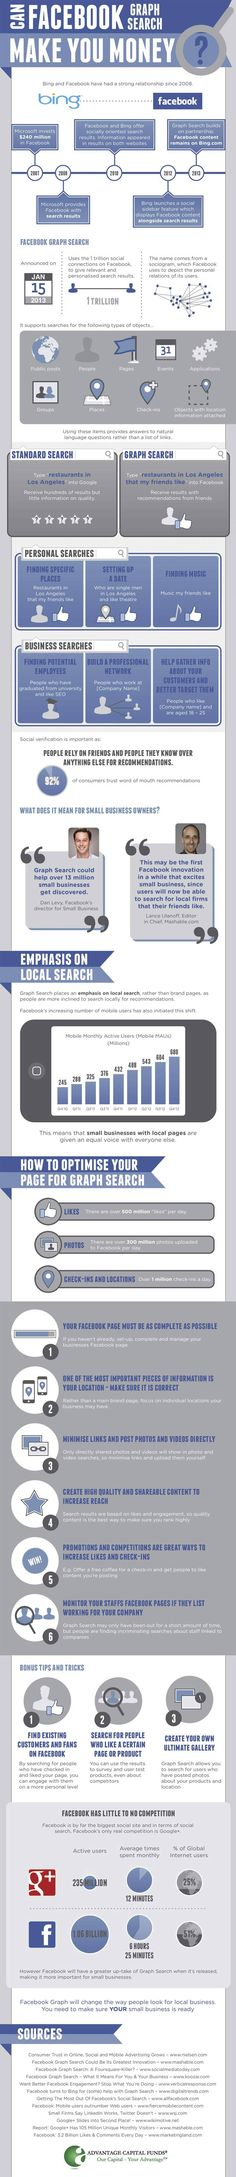 #infographic: Can #Facebook Graph #Search make you Money? an